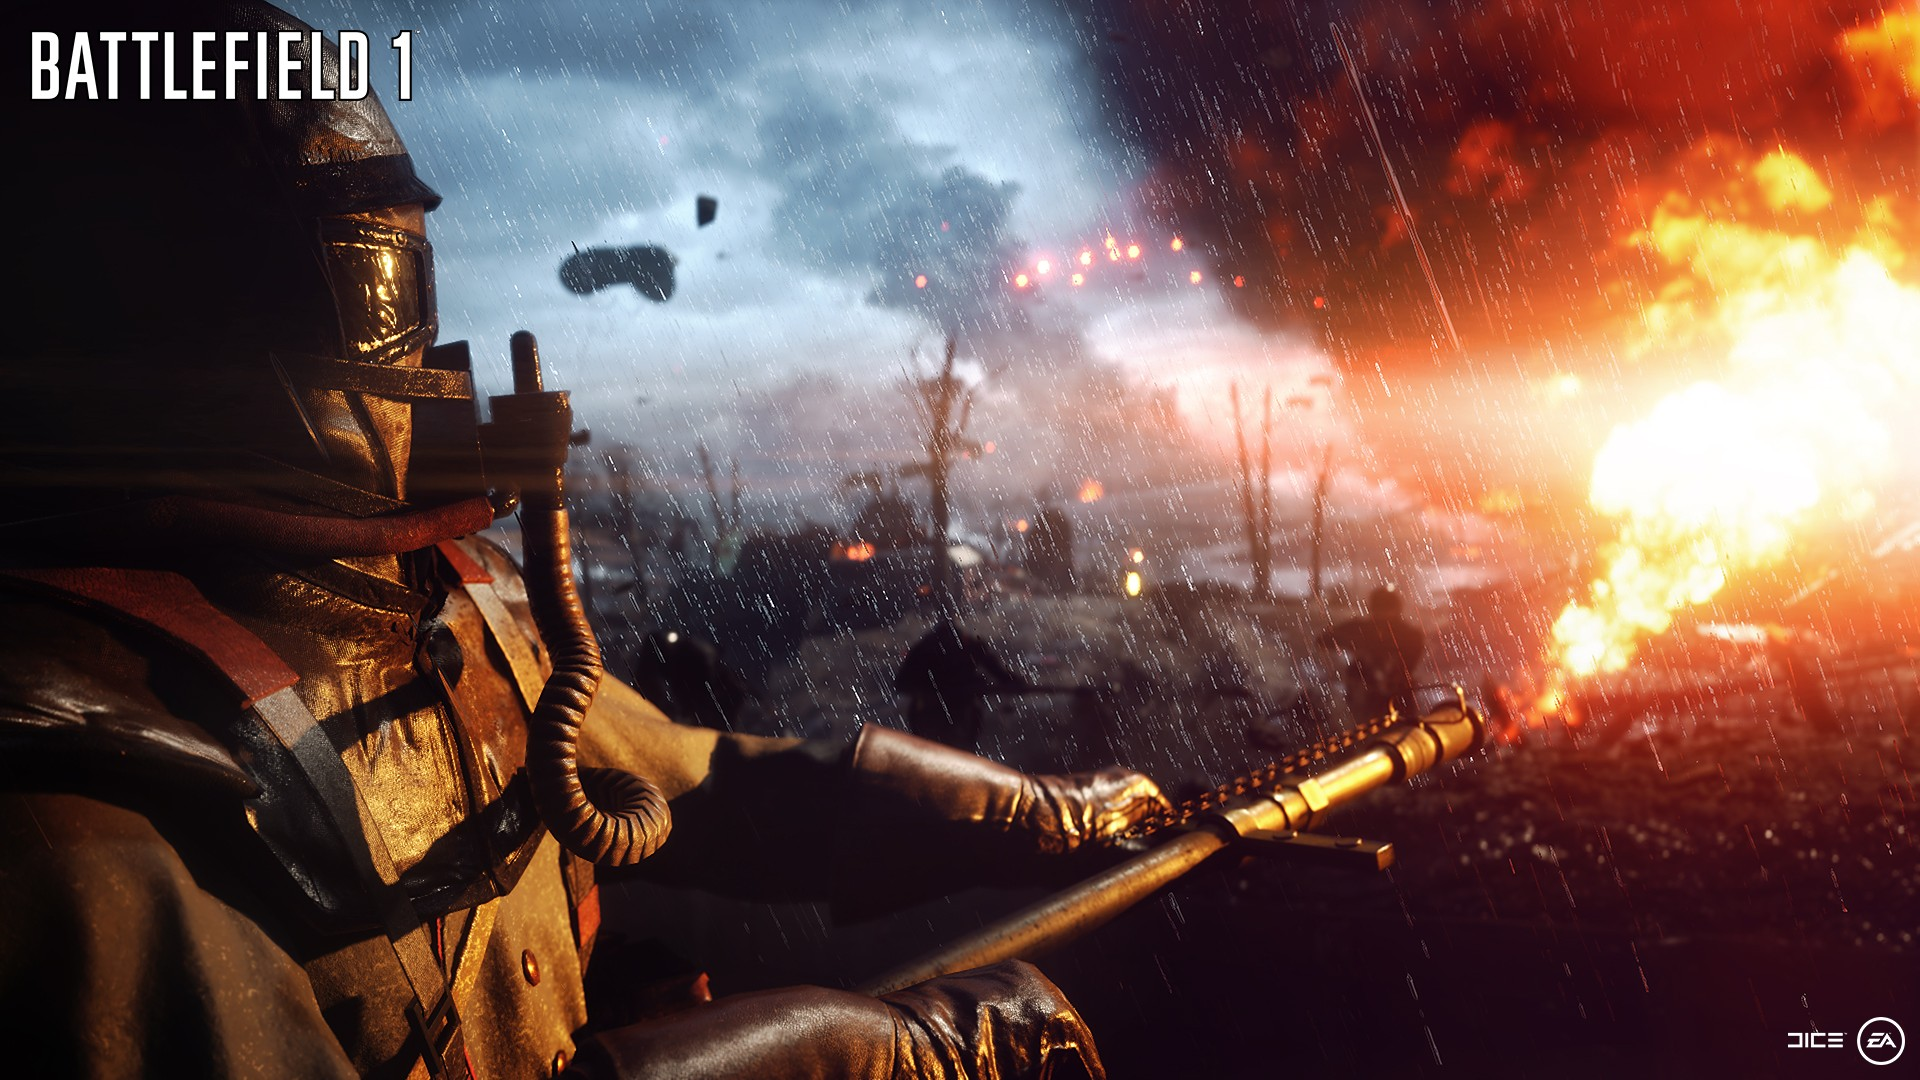 Battlefield 1 is getting 4K support on Xbox One X later this summer screenshot